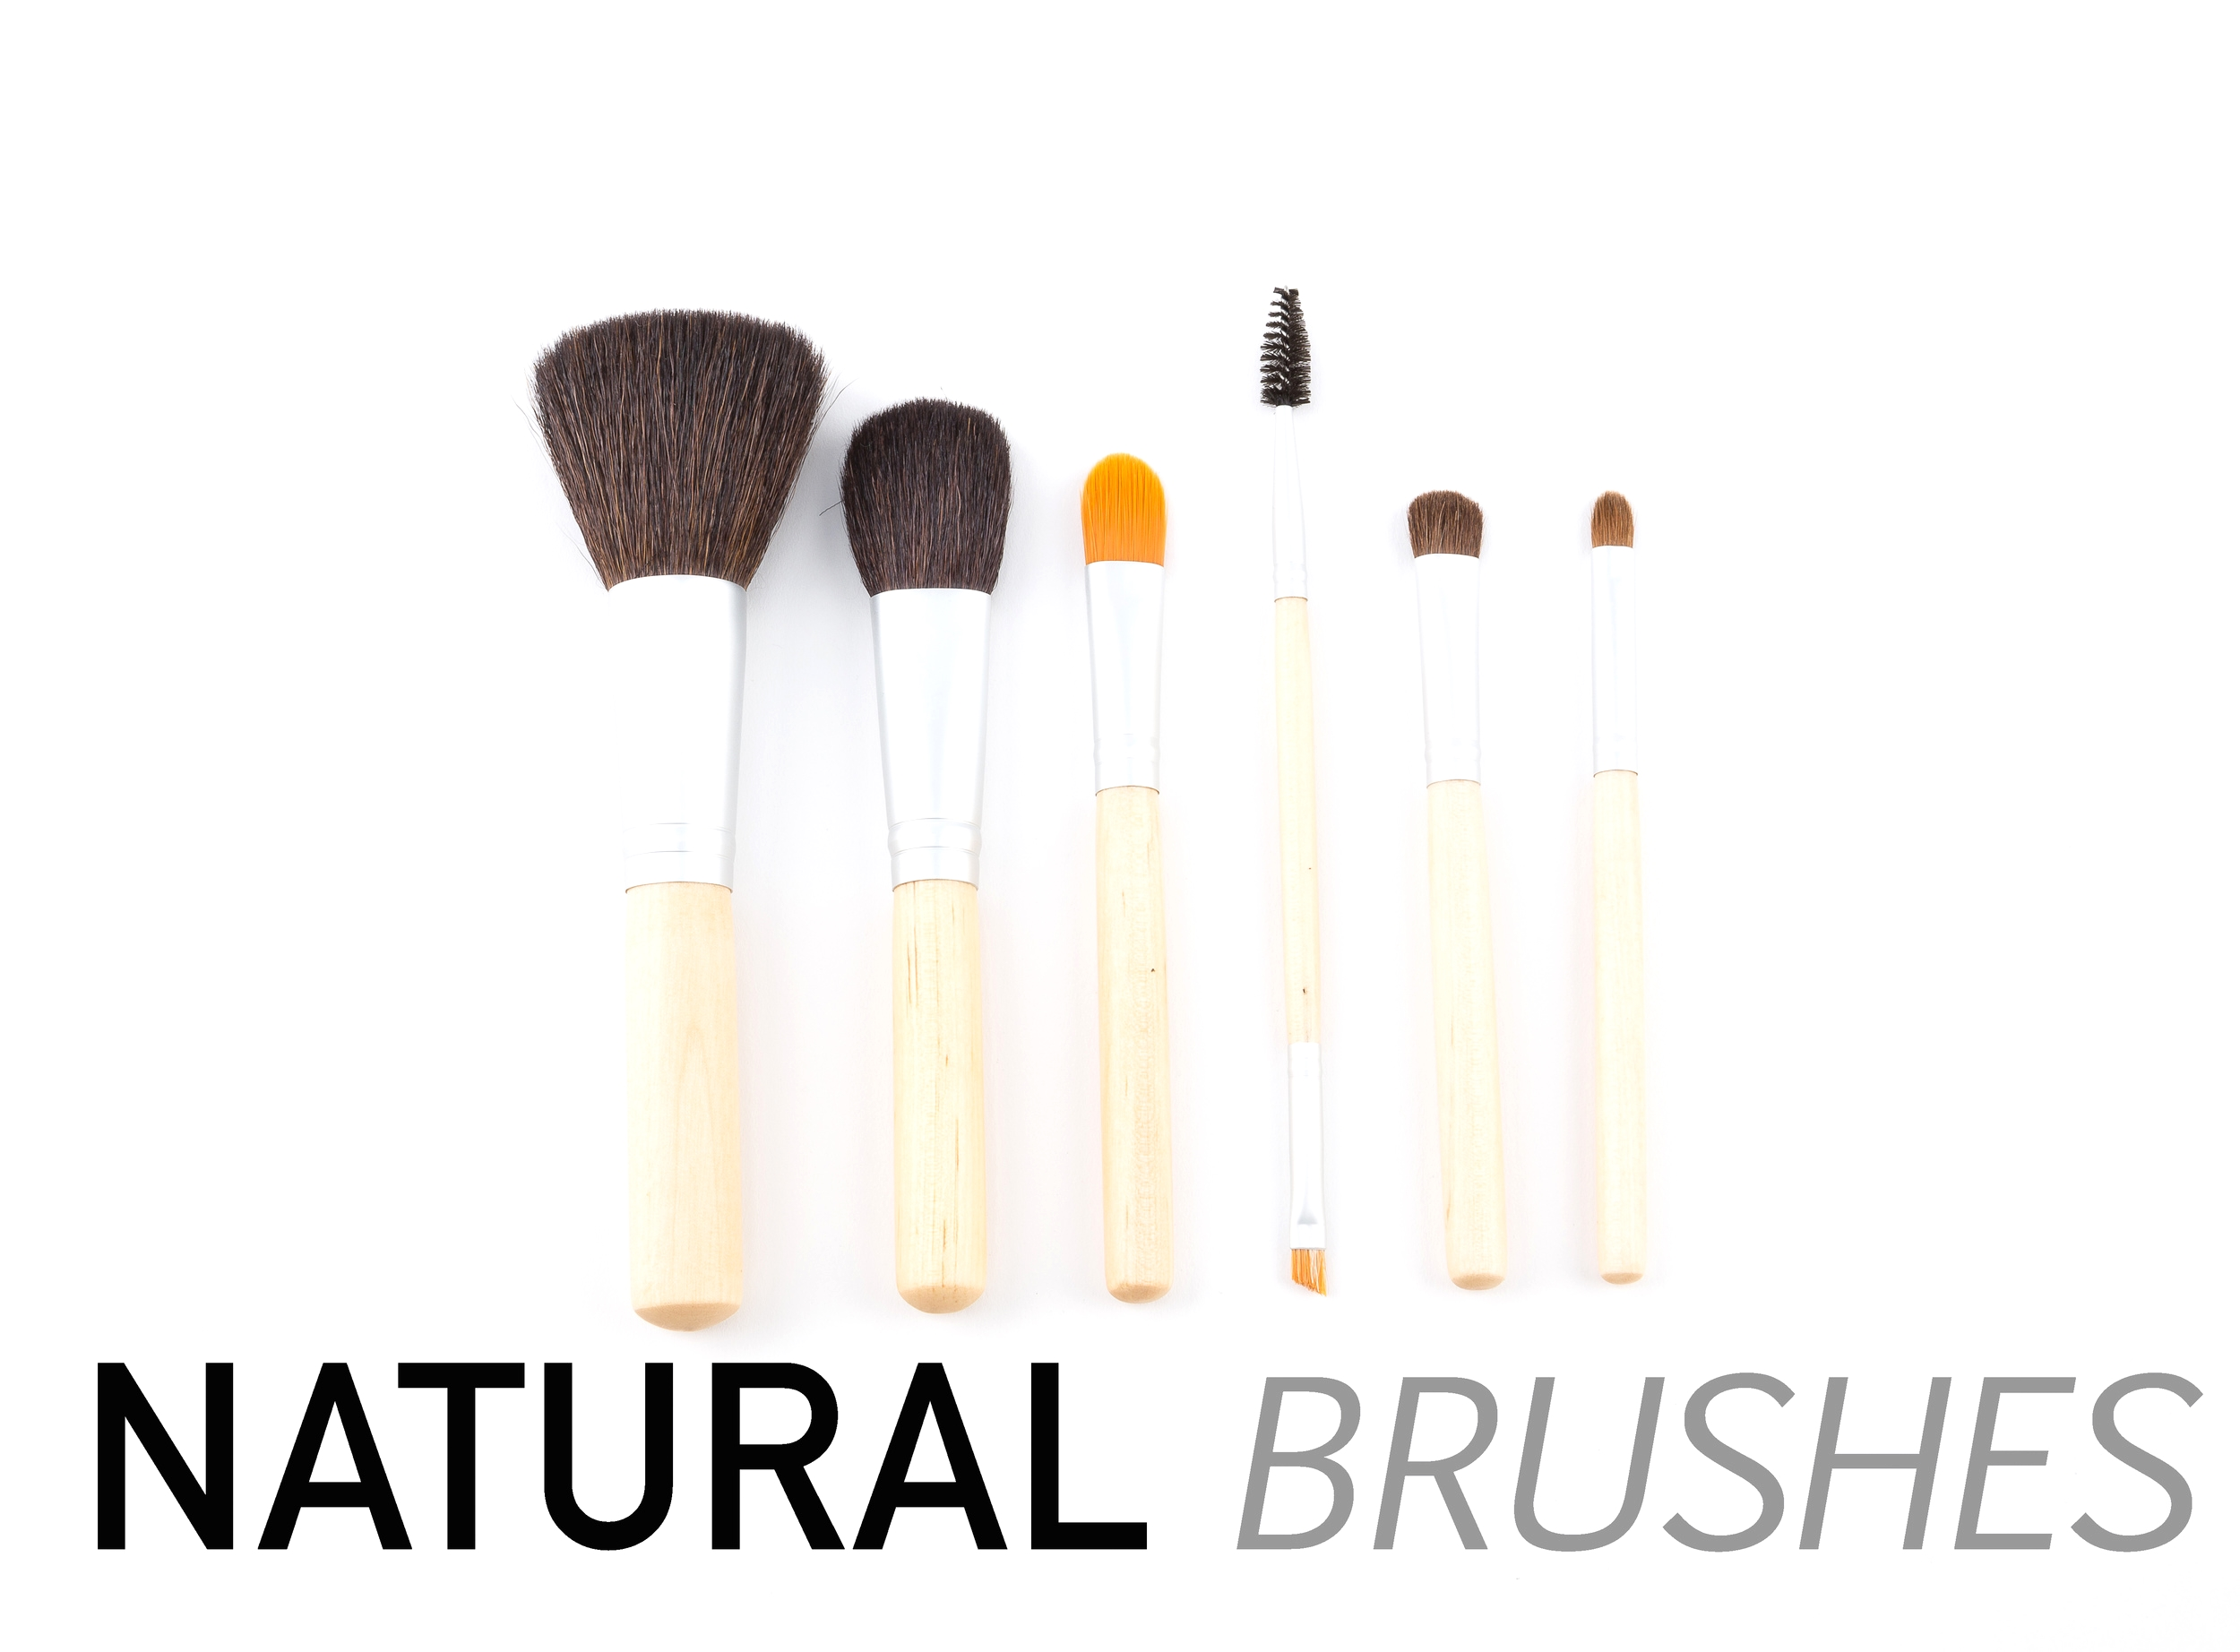 CLICK TO VIEW ALL NATURAL BRUSHES